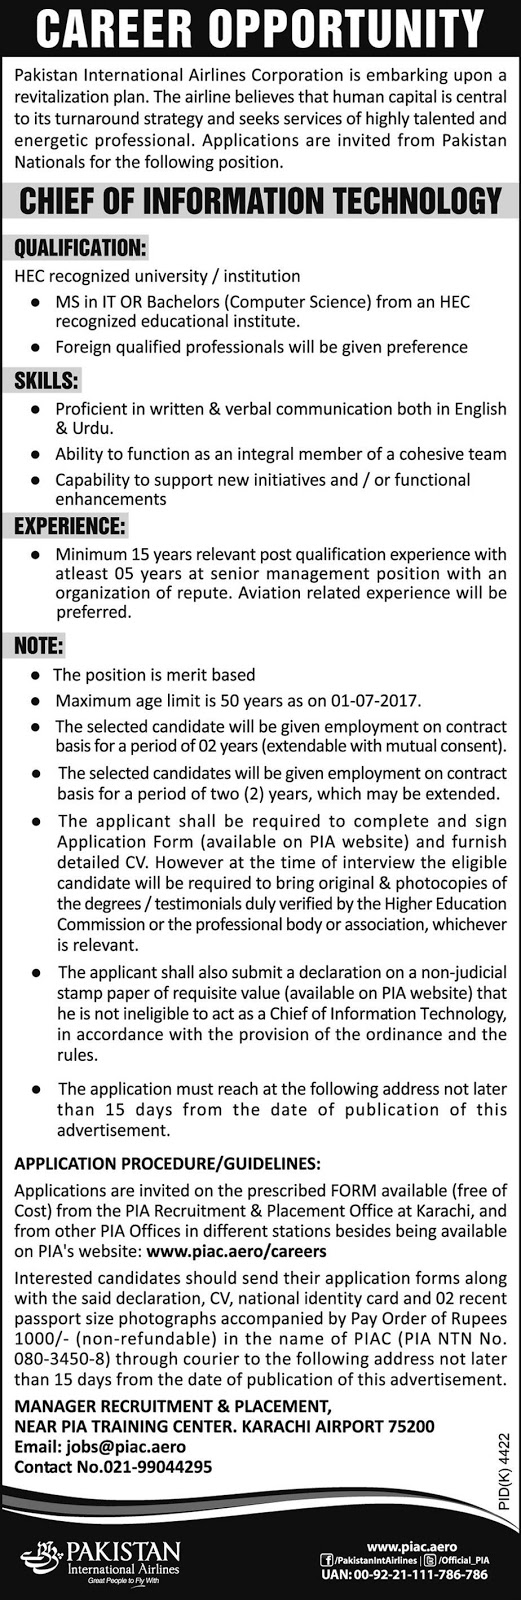 PIA Jobs In Pakistan International Airlines Karachi 20 May 2017